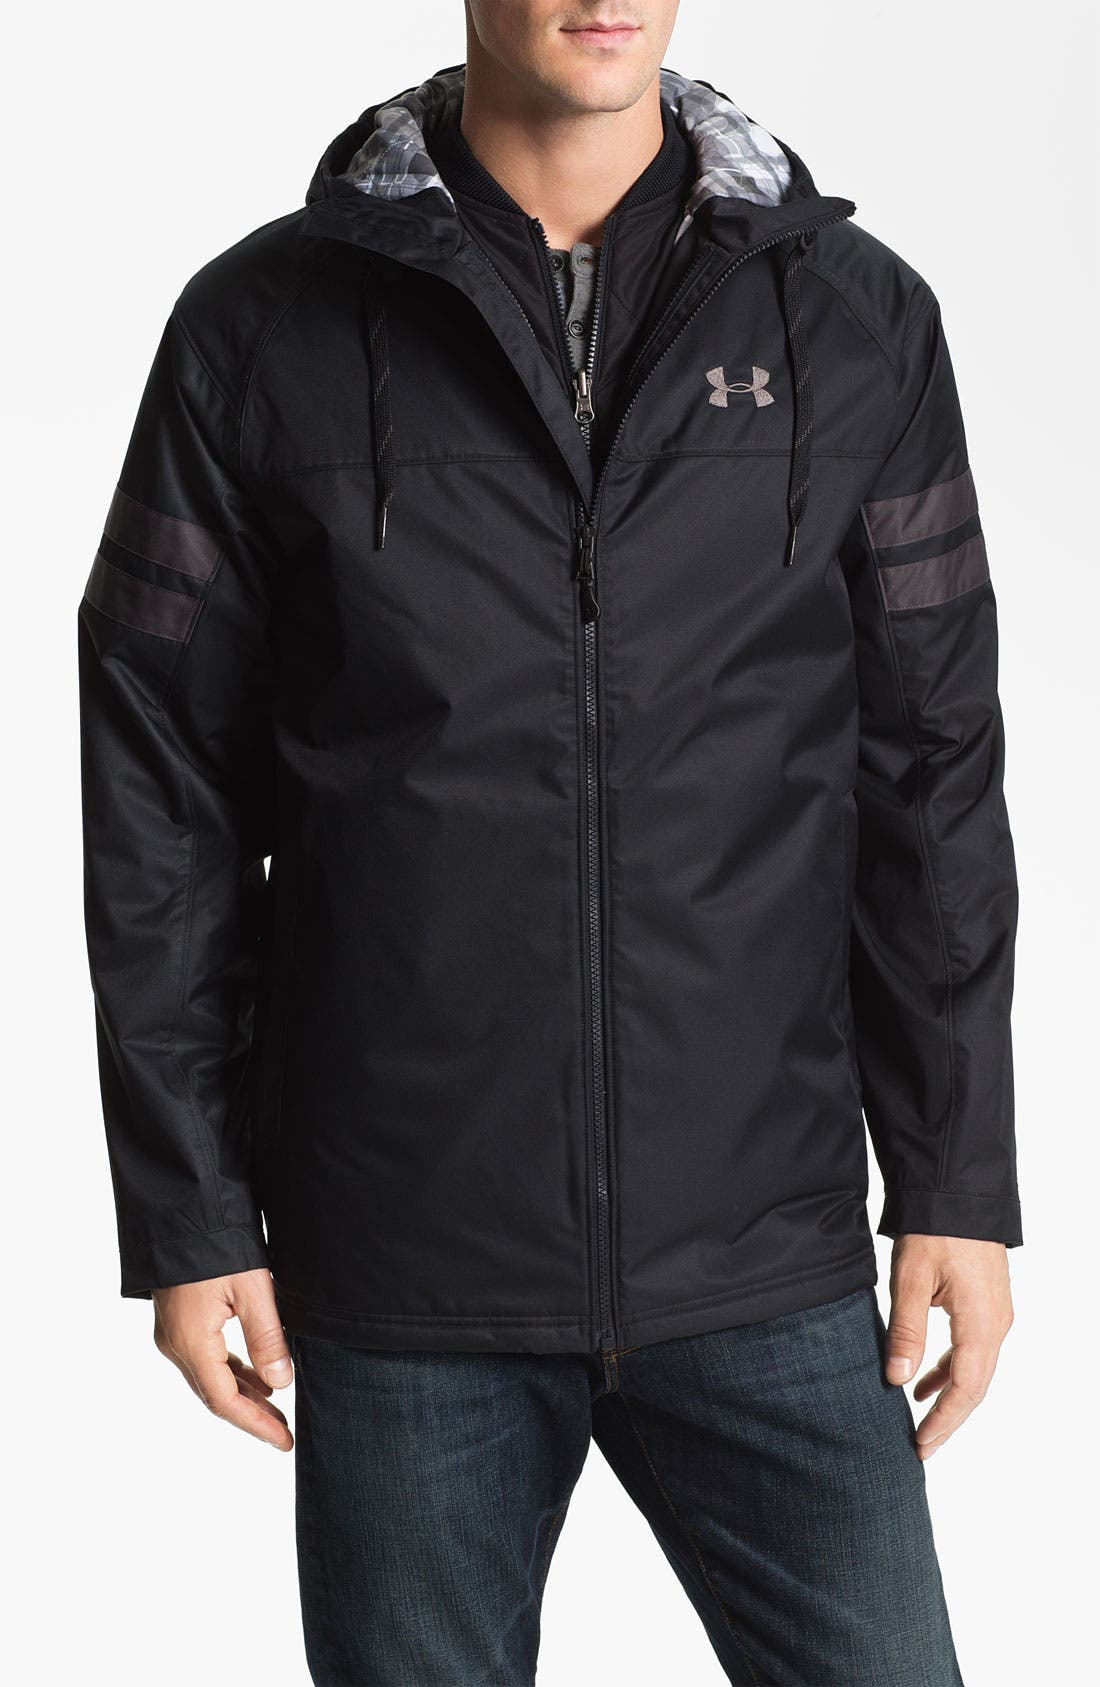 Main Image - Under Armour 'Universe Storm' 3-in-1 Jacket